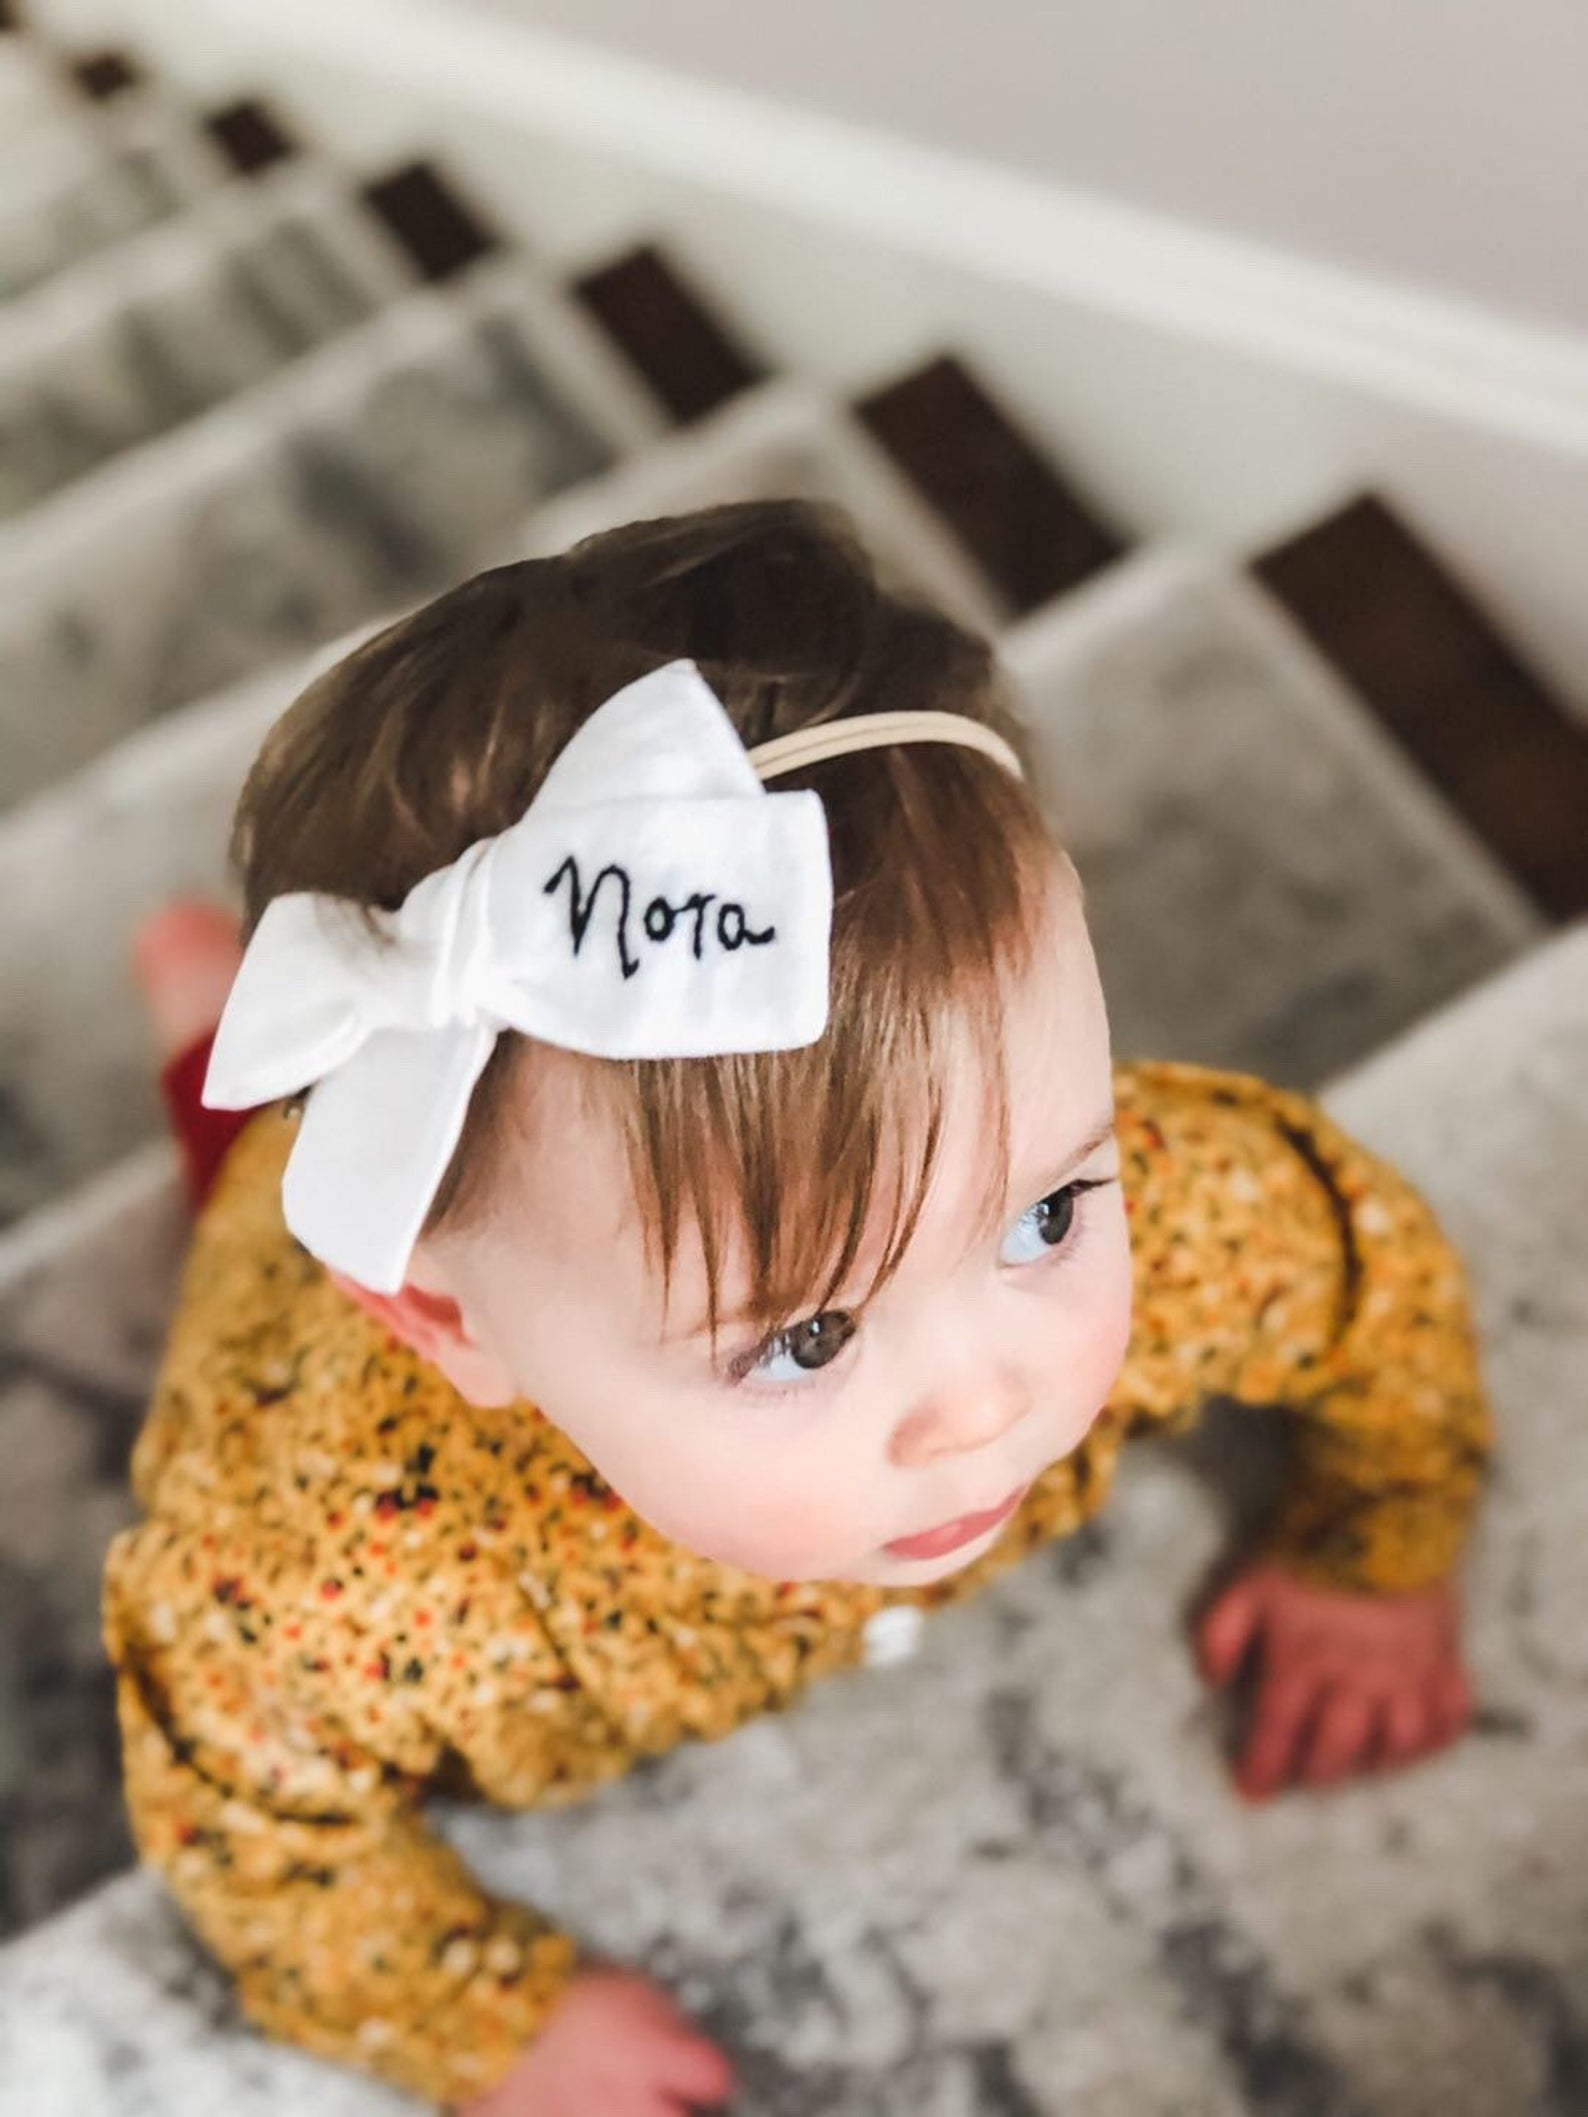 a baby wearing a white boutique hair bow headband with her name embroidered on it